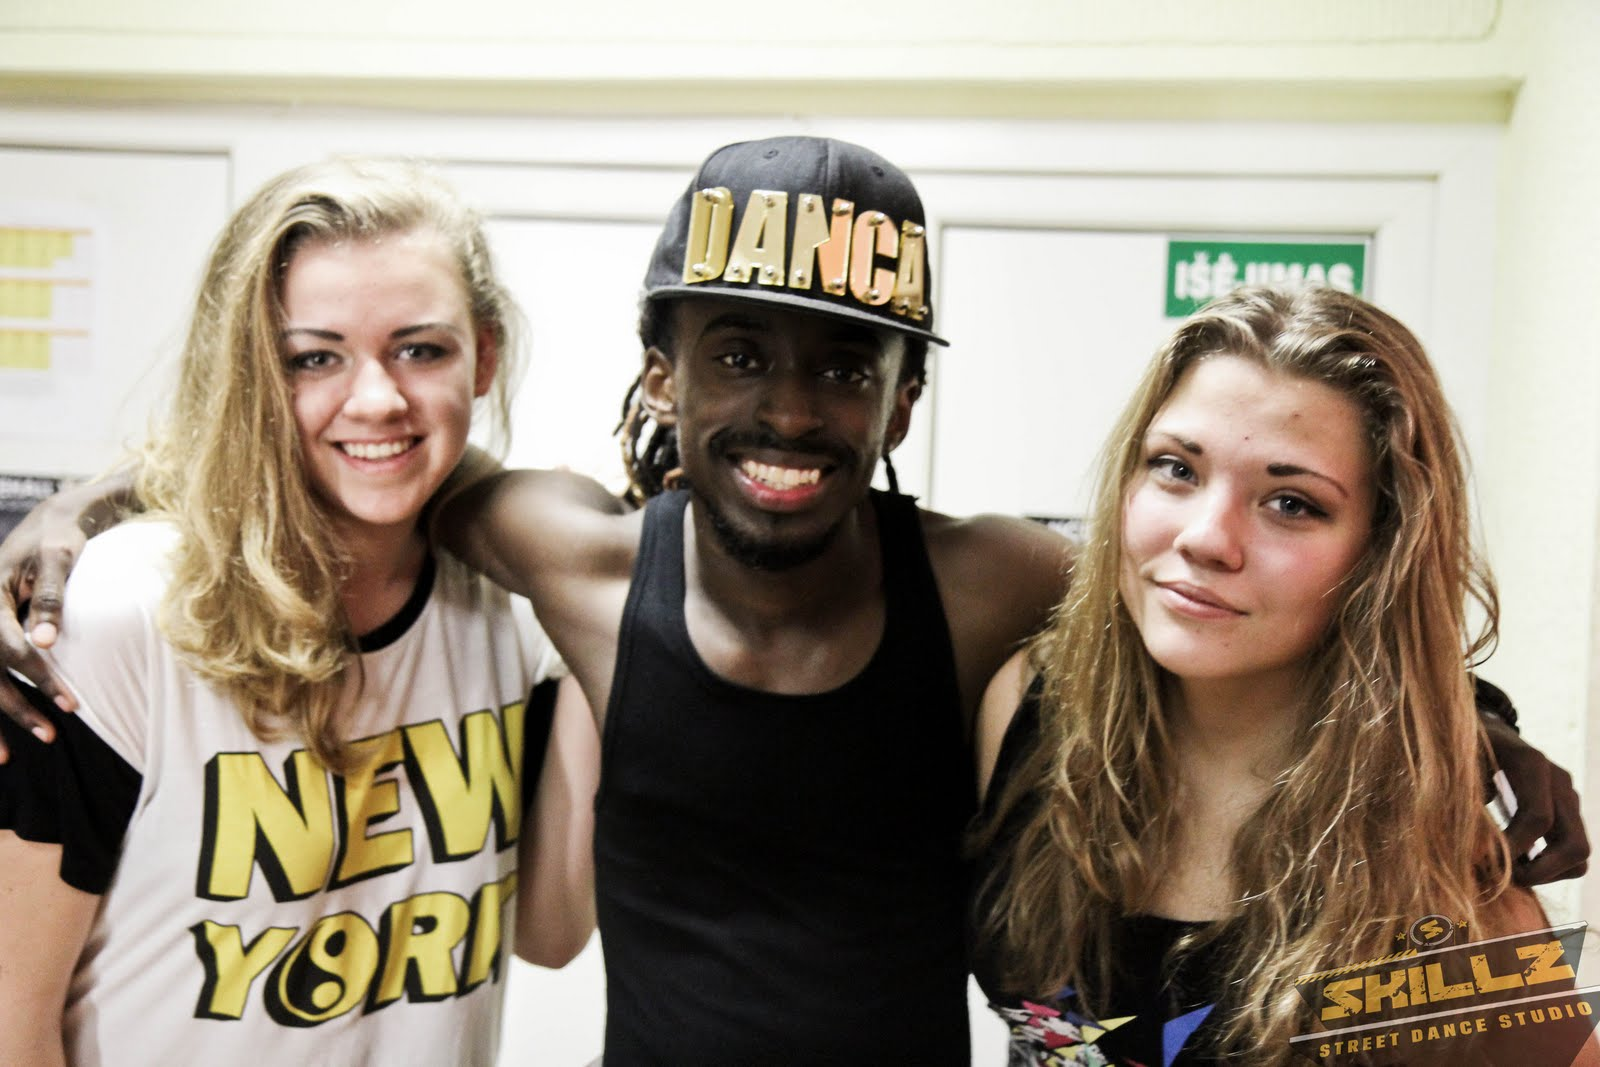 Dancehall workshop with Black Di Danca (USA, New Y - IMG_6760.jpg